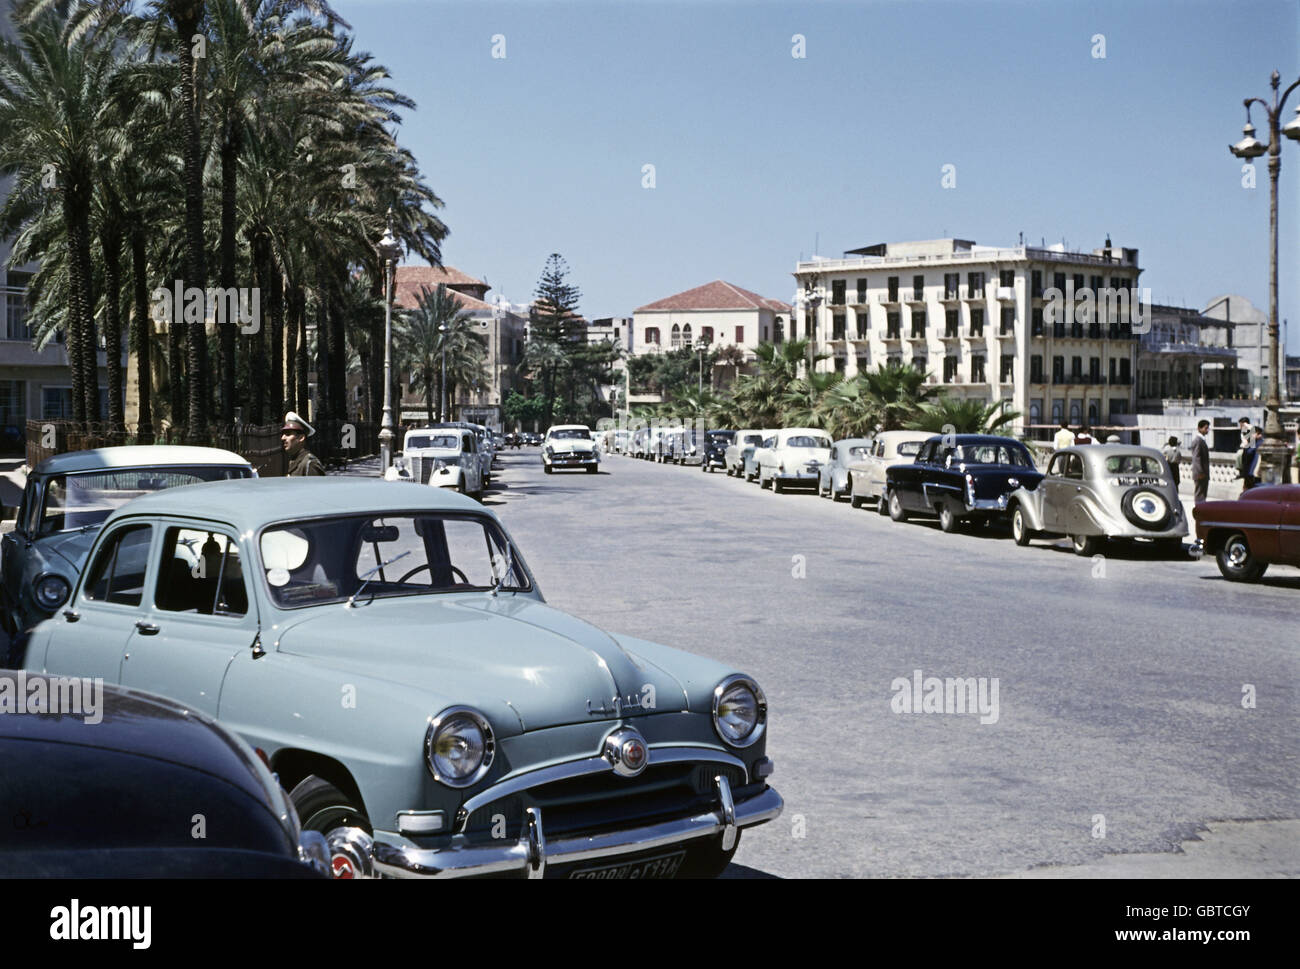 geography / travel, Lebanon, Beirut, street scene, parked cars, 1955, Additional-Rights-Clearences-NA - Stock Image